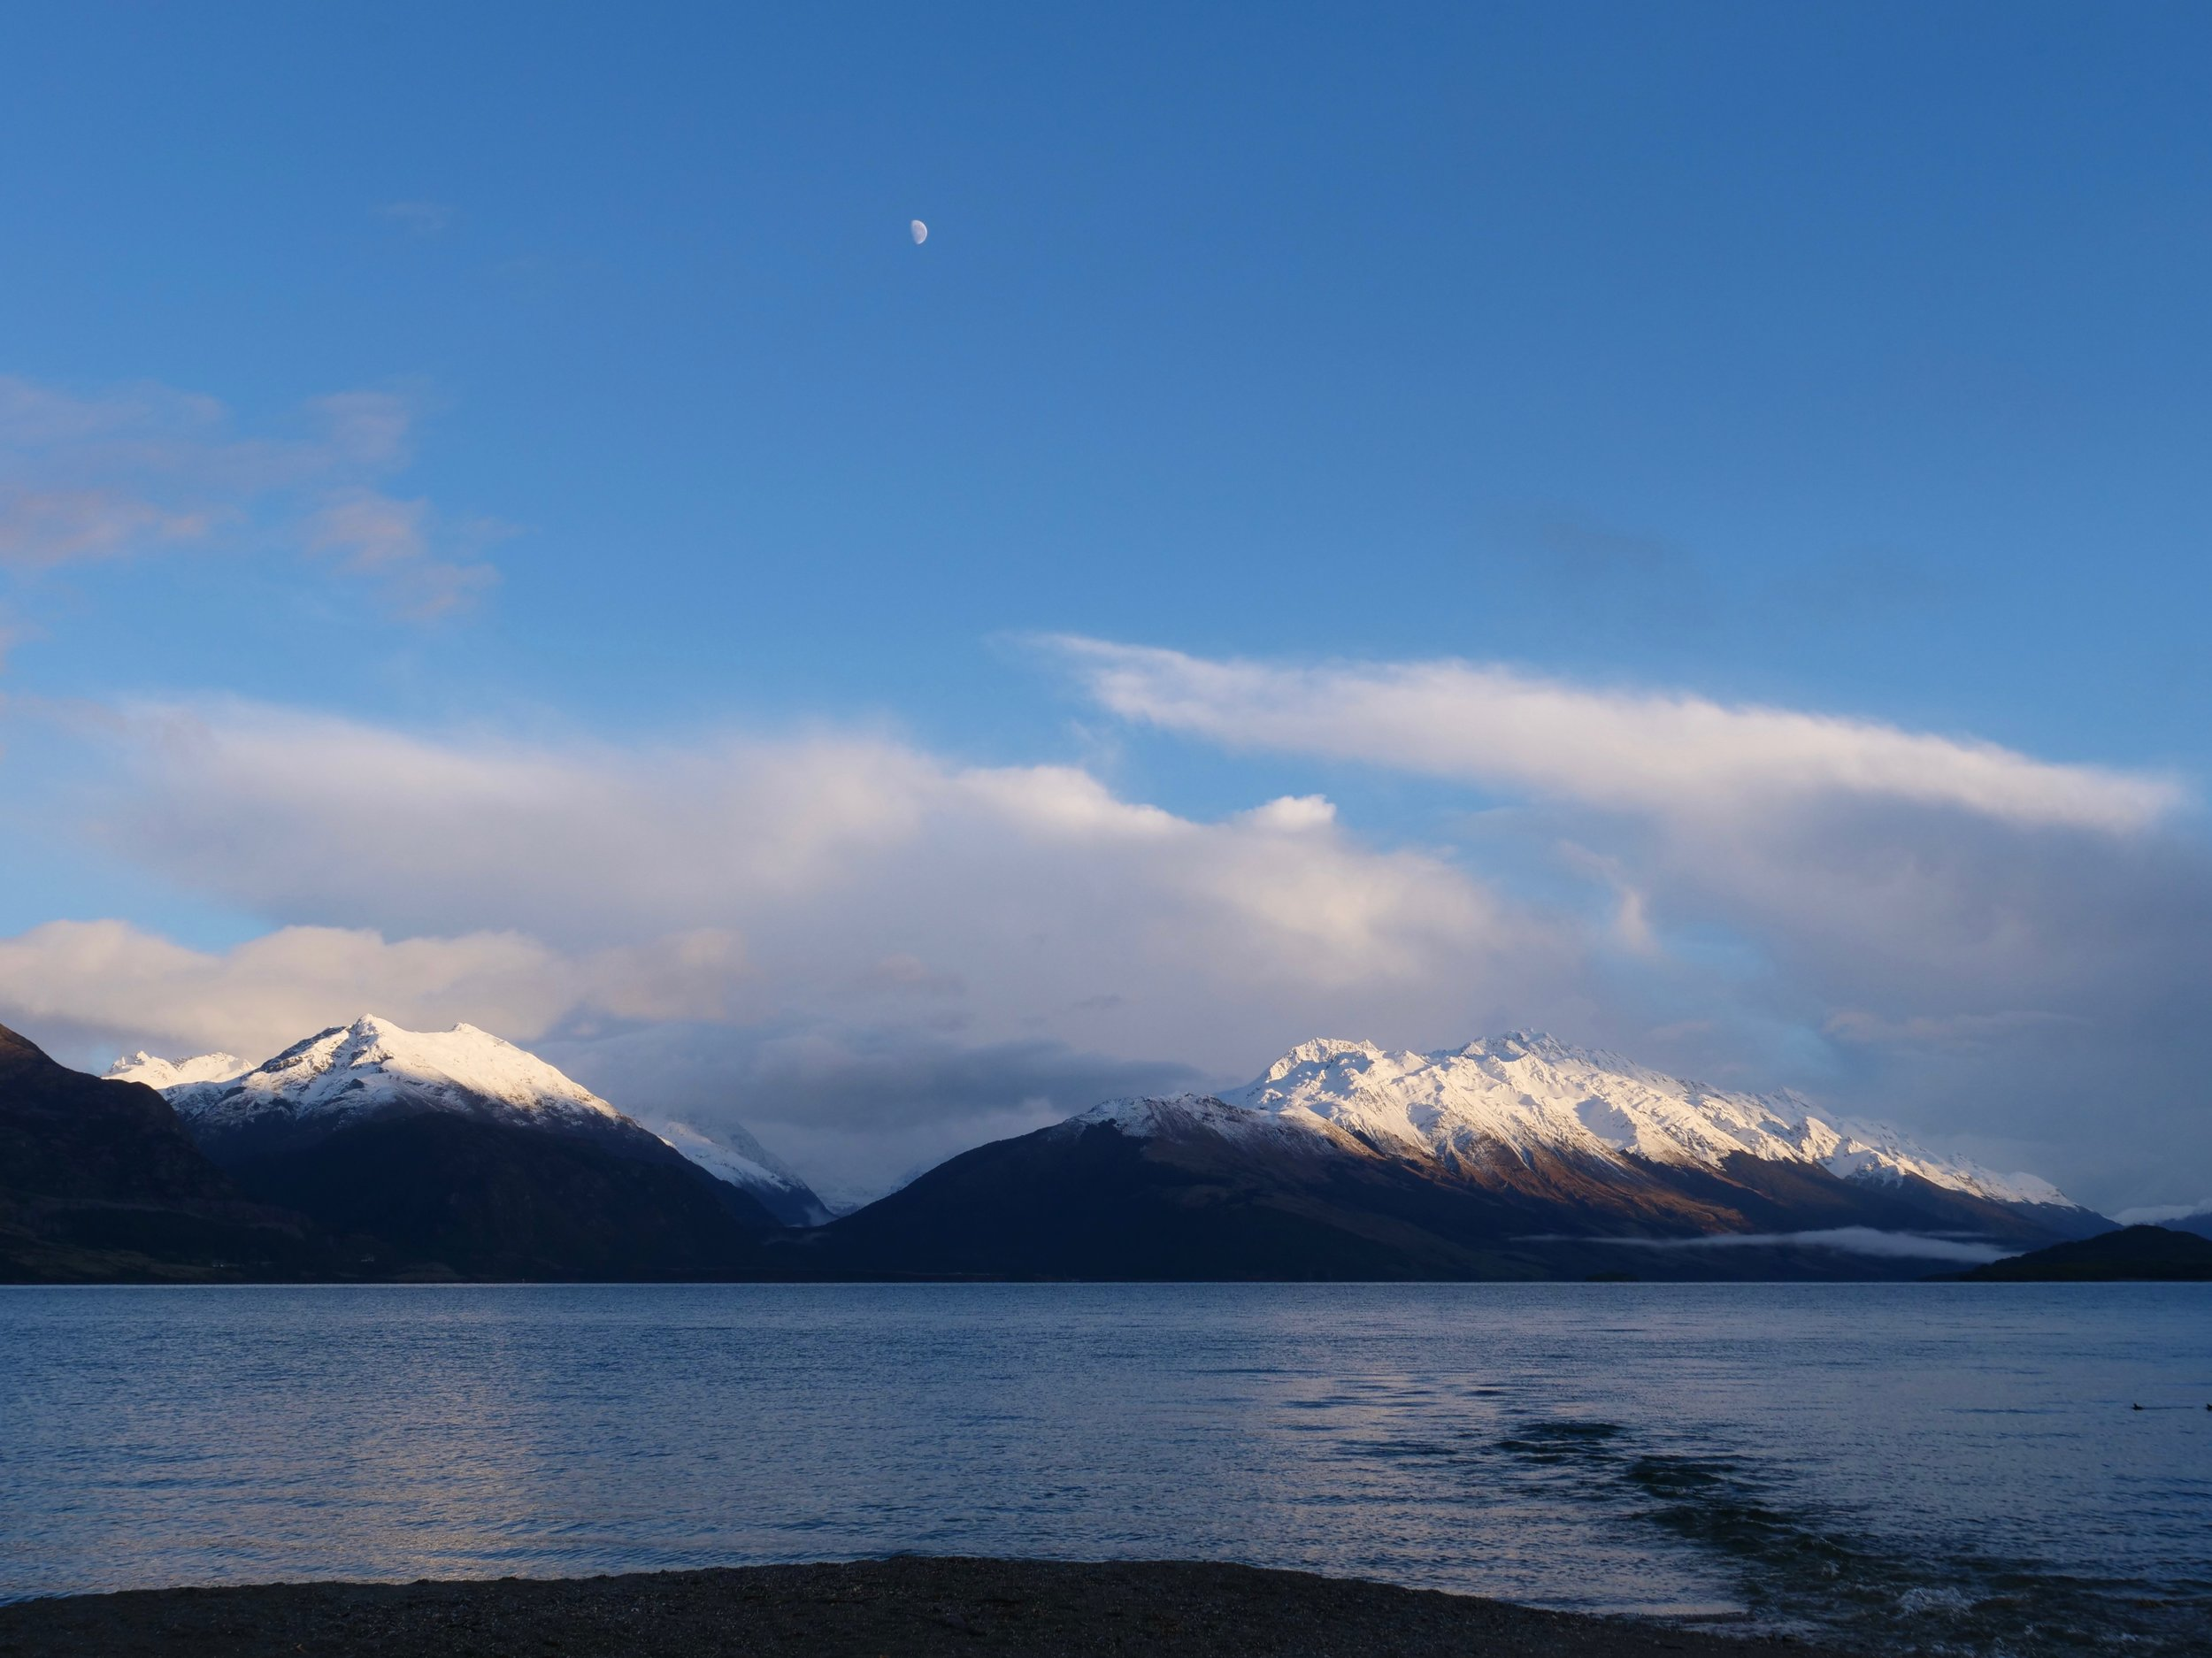 Sunrise/Moonset over Lake Wakatipu